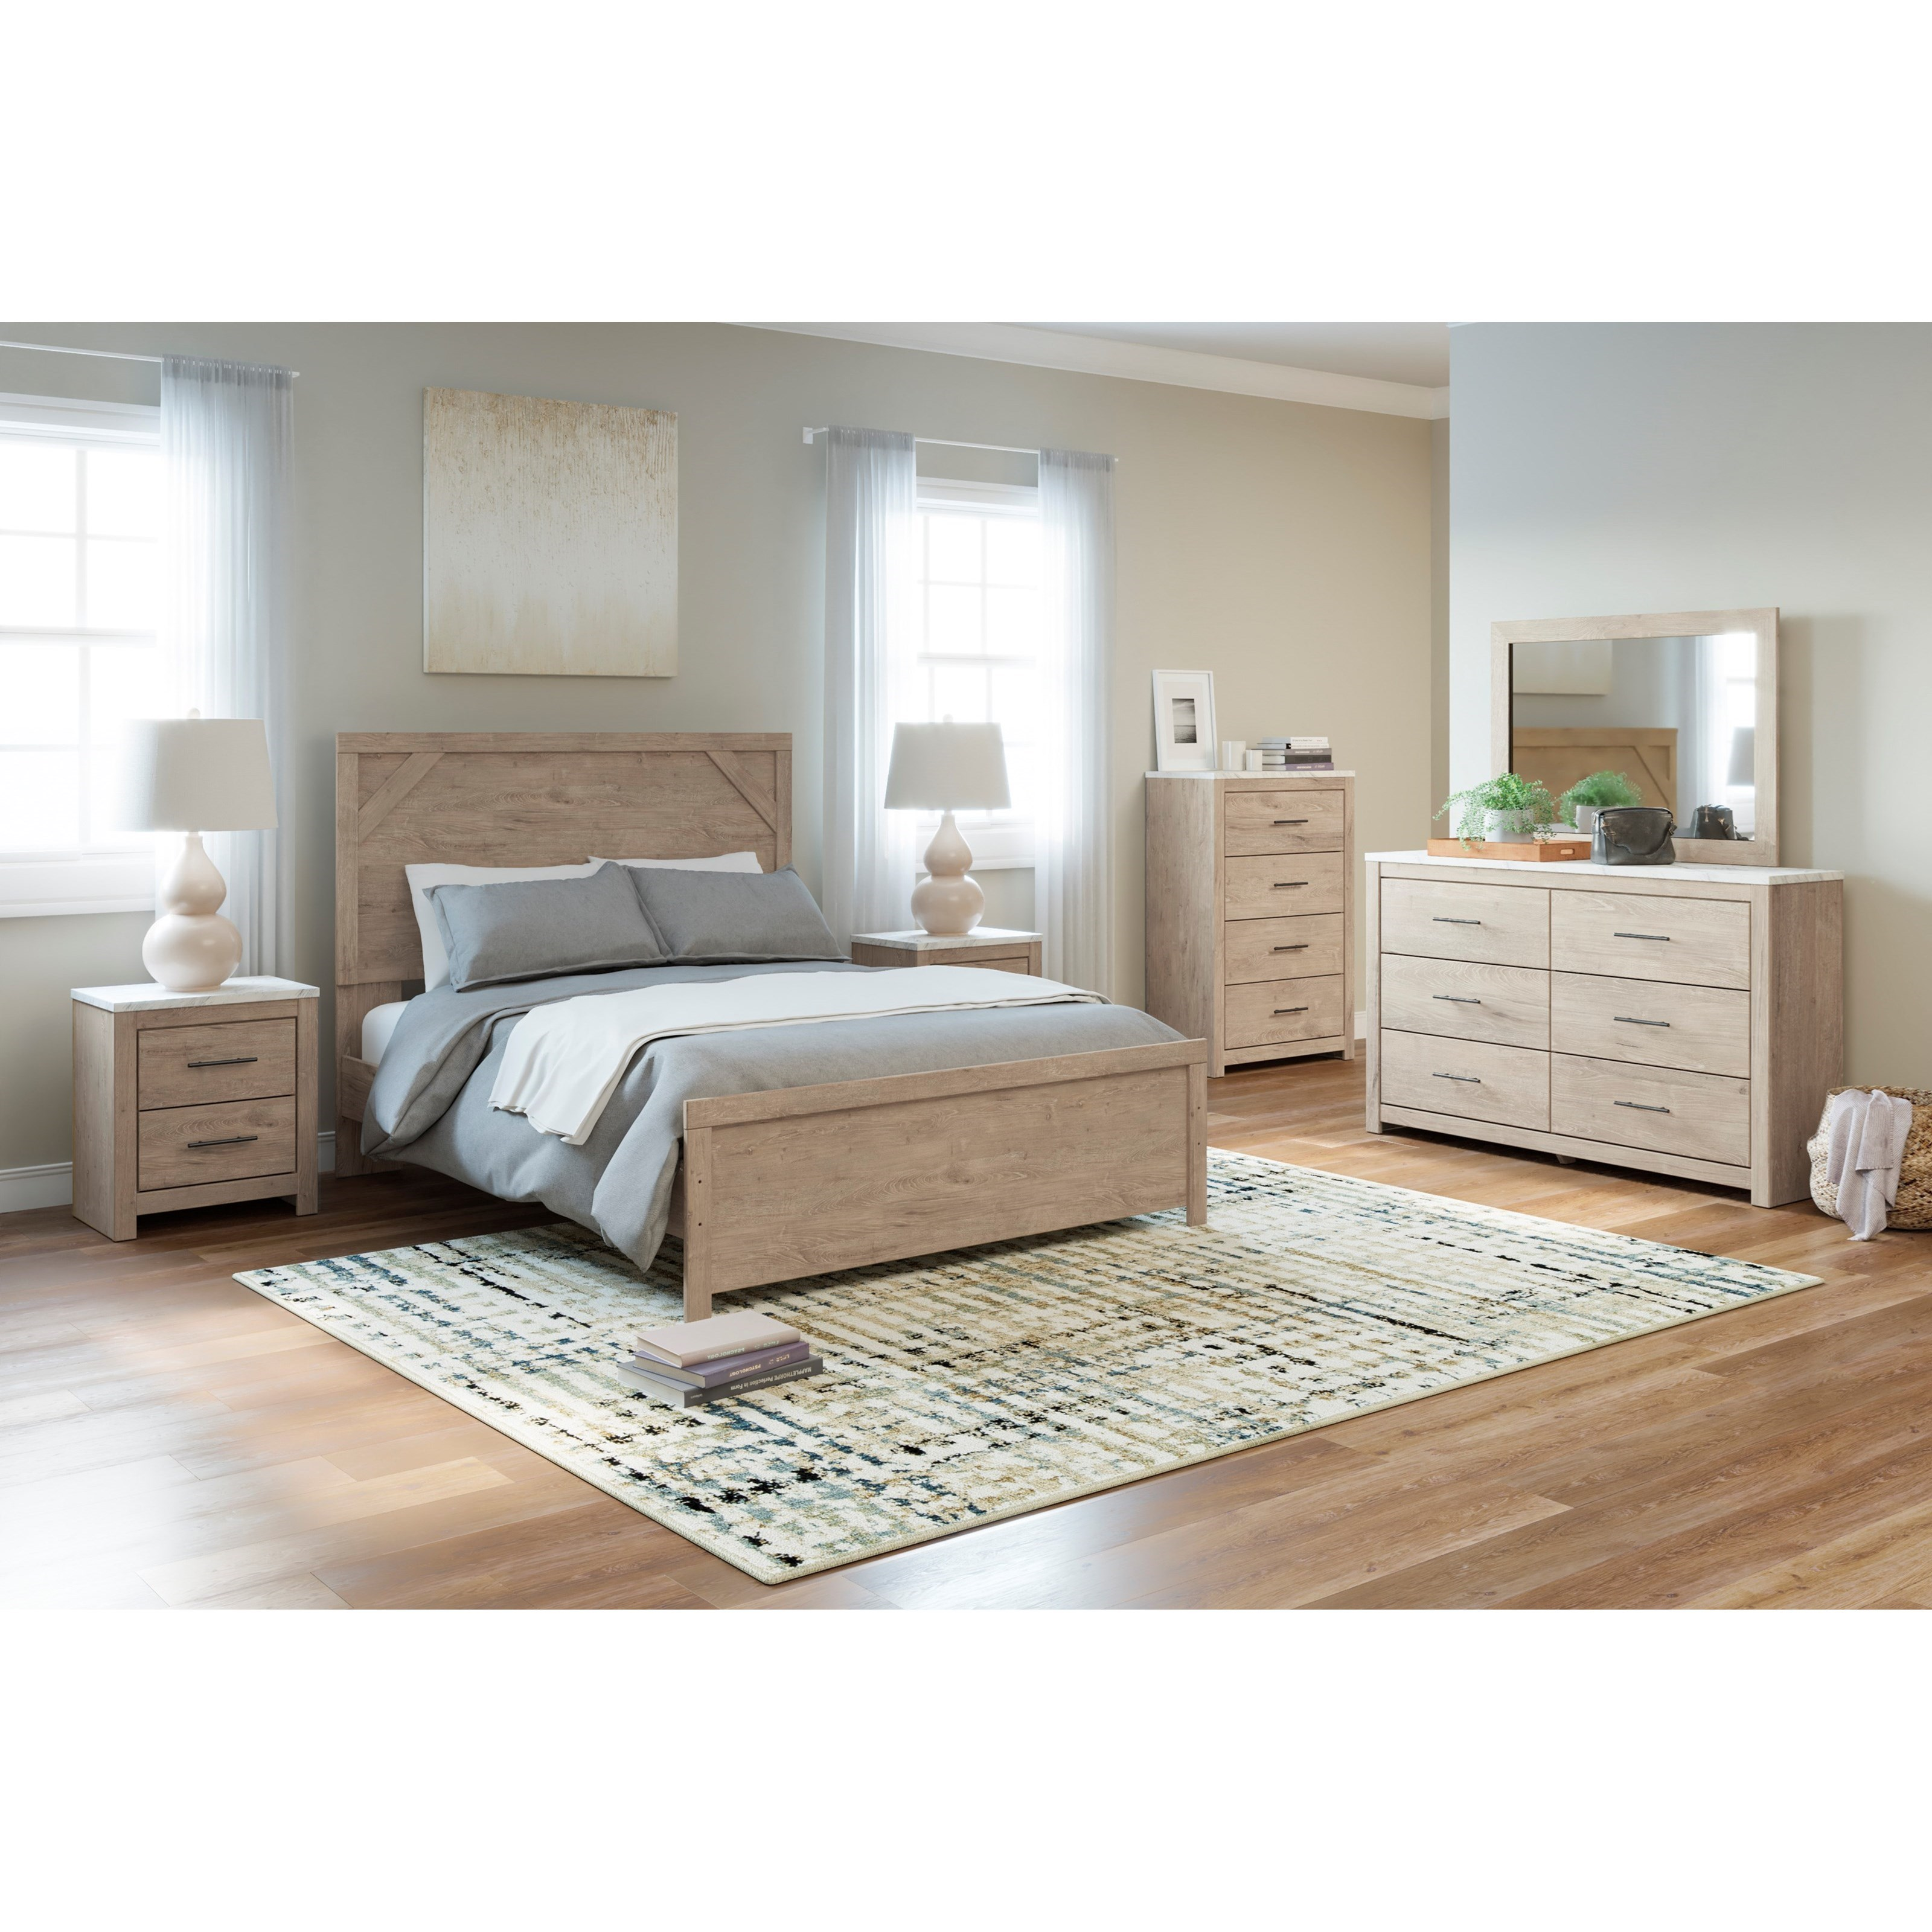 Senniberg Queen Bedroom Group by Signature Design by Ashley at Furniture Barn